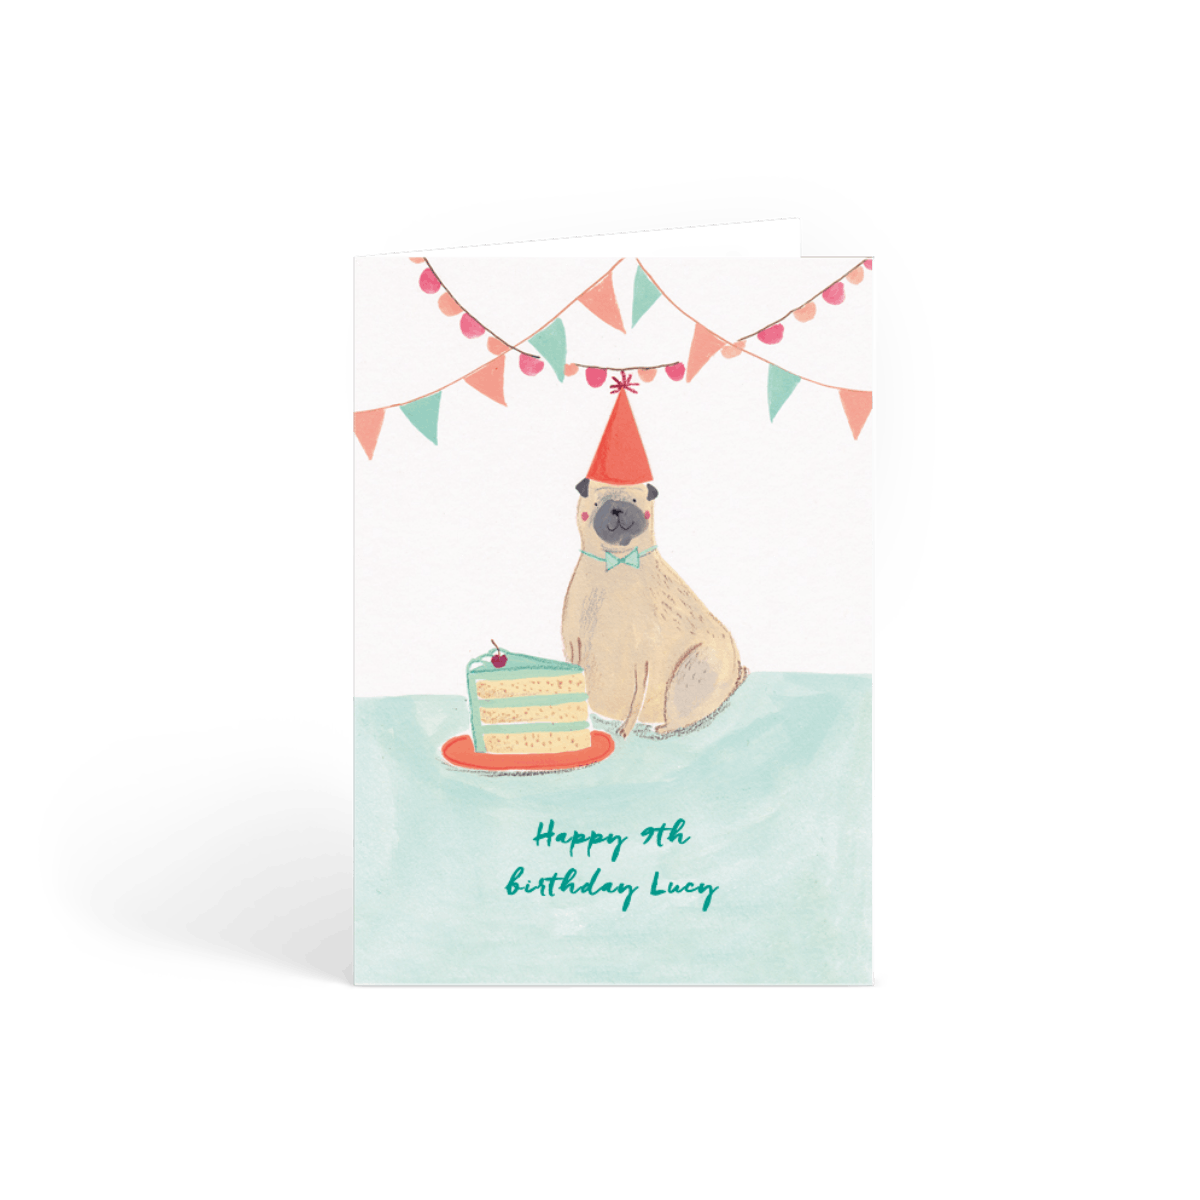 Https%3a%2f%2fwww.papier.com%2fproduct image%2f3113%2f2%2fbirthday pug 783 front 1453910653.png?ixlib=rb 1.1